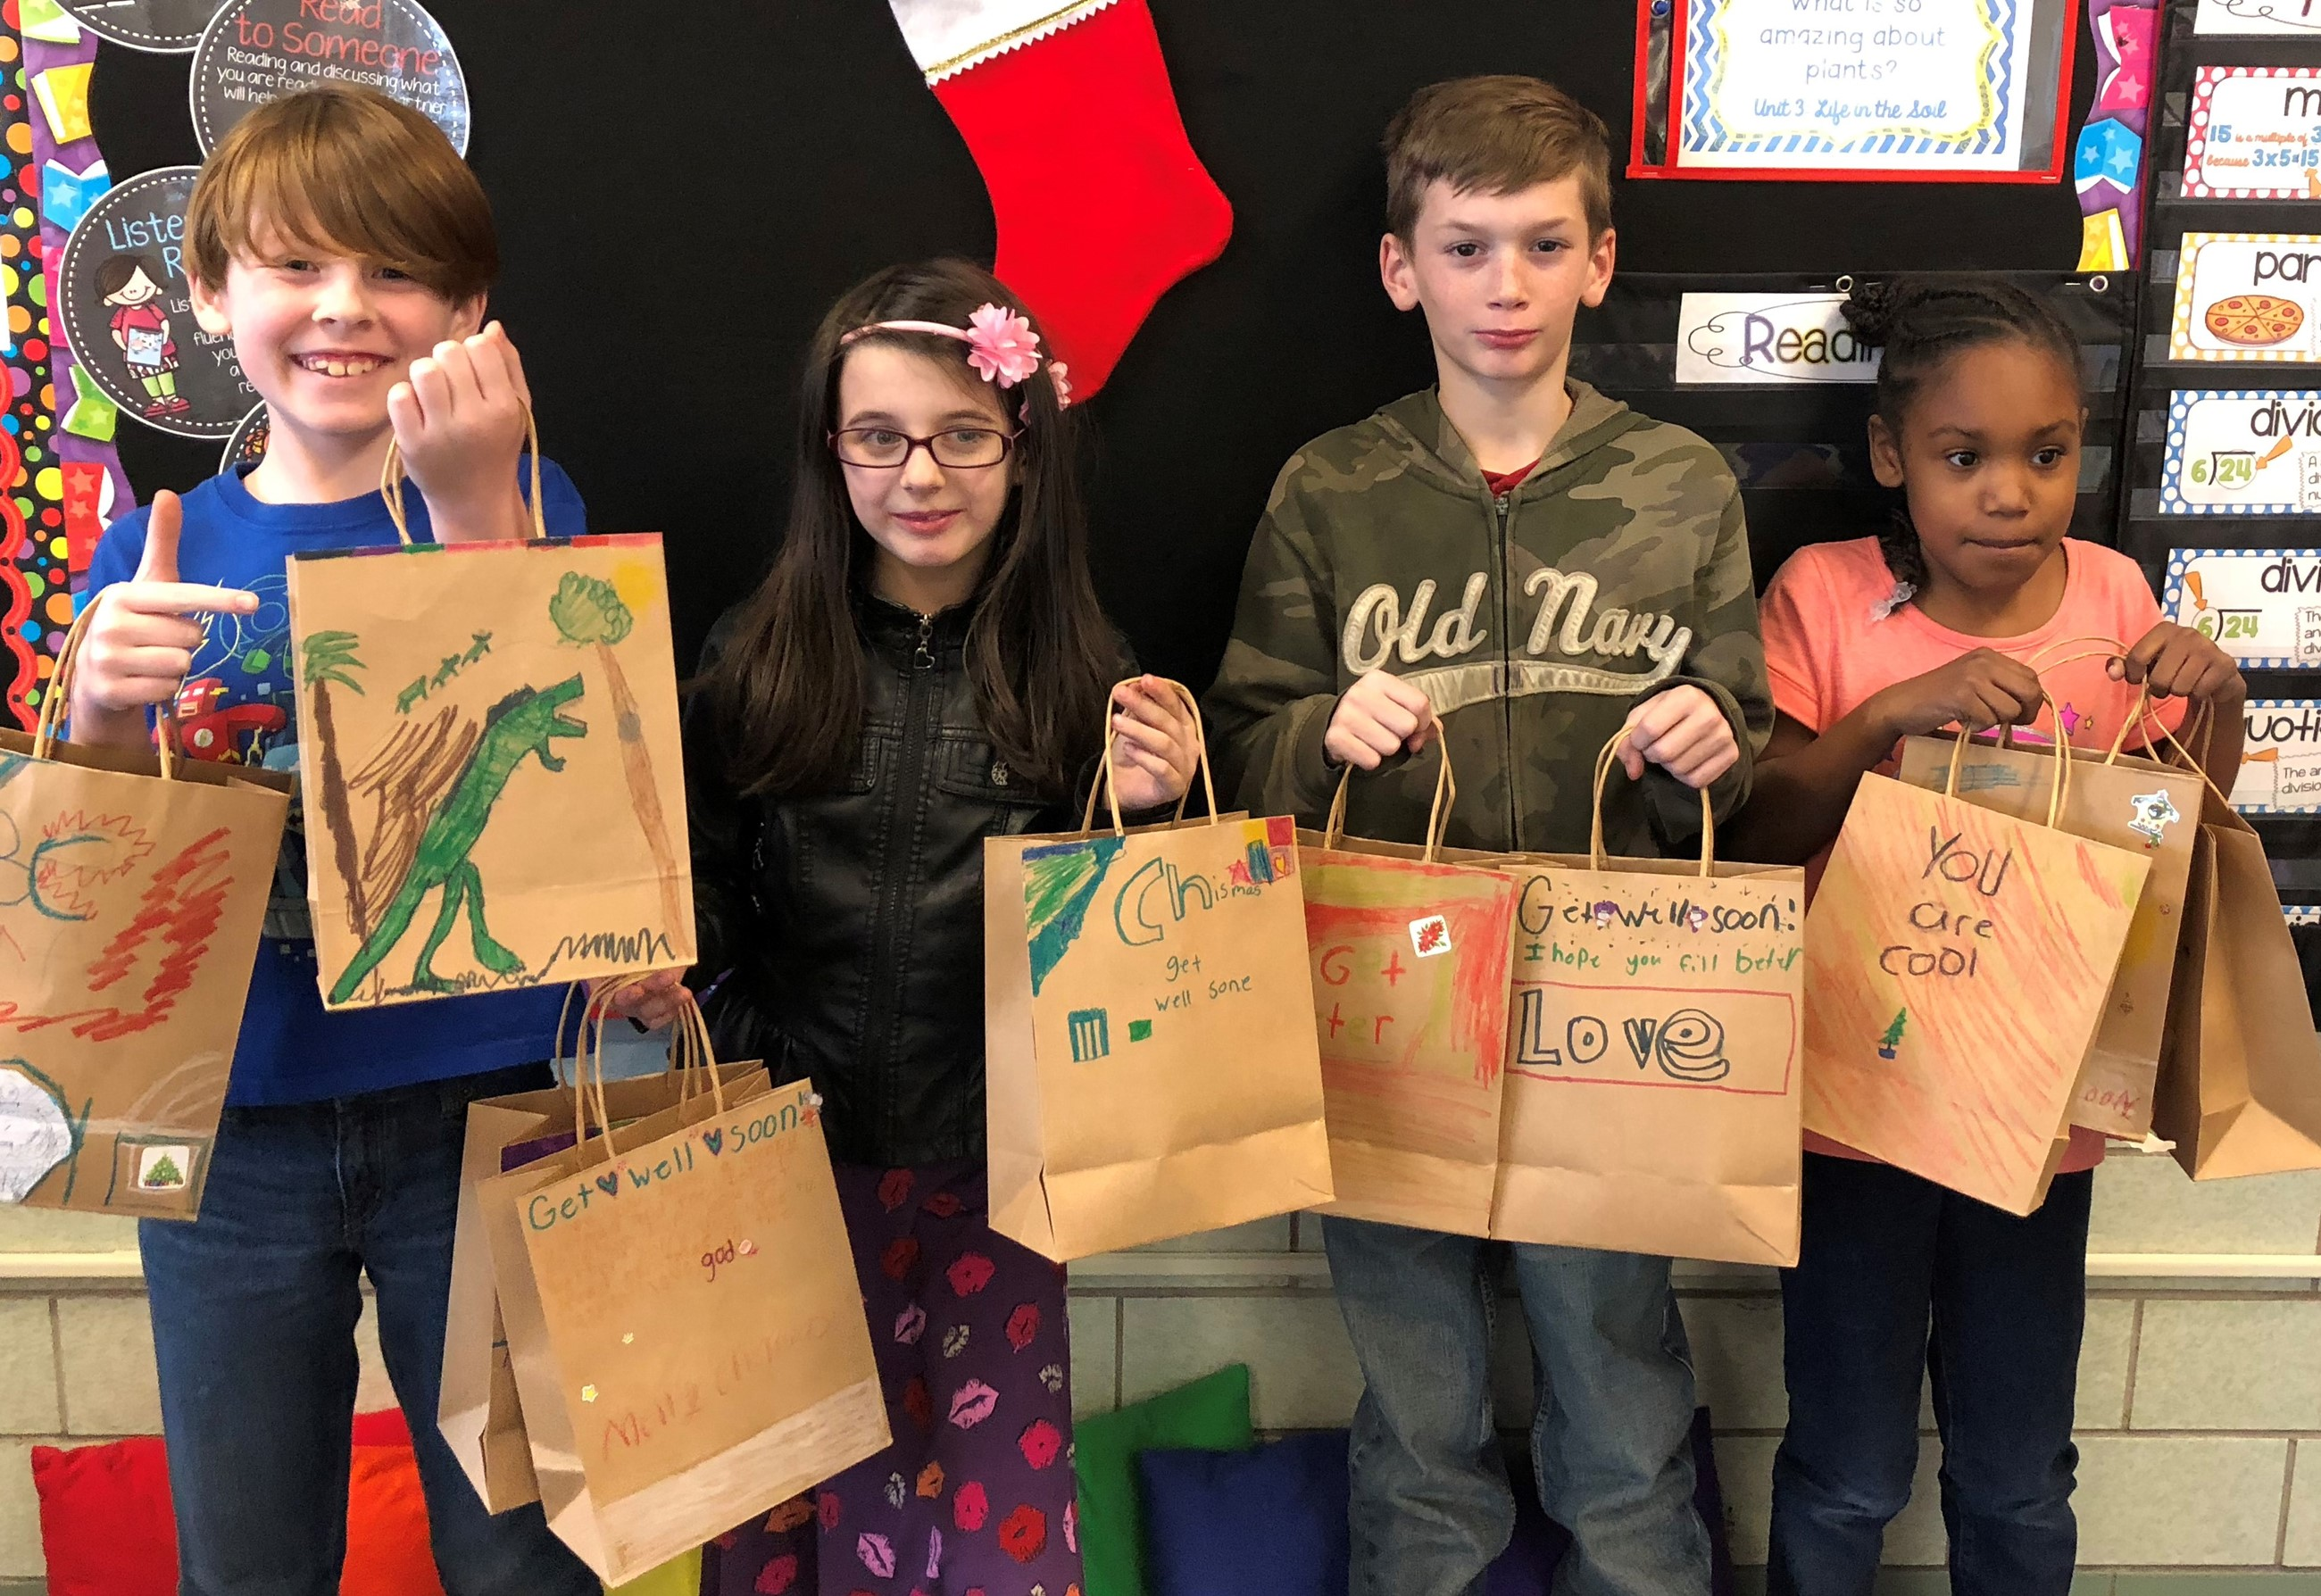 During the month of November, we learned about and modeled the character trait of gratitude and giving back. Our students were able to help make scarves and decorate gift bags, which will be given to patients at Akron Children's Hospital. I am very proud of the hard work and effort our students put in to brightening the holiday season for other children who may not be able to go home for Christmas. Thought I'd share something positive! :-)